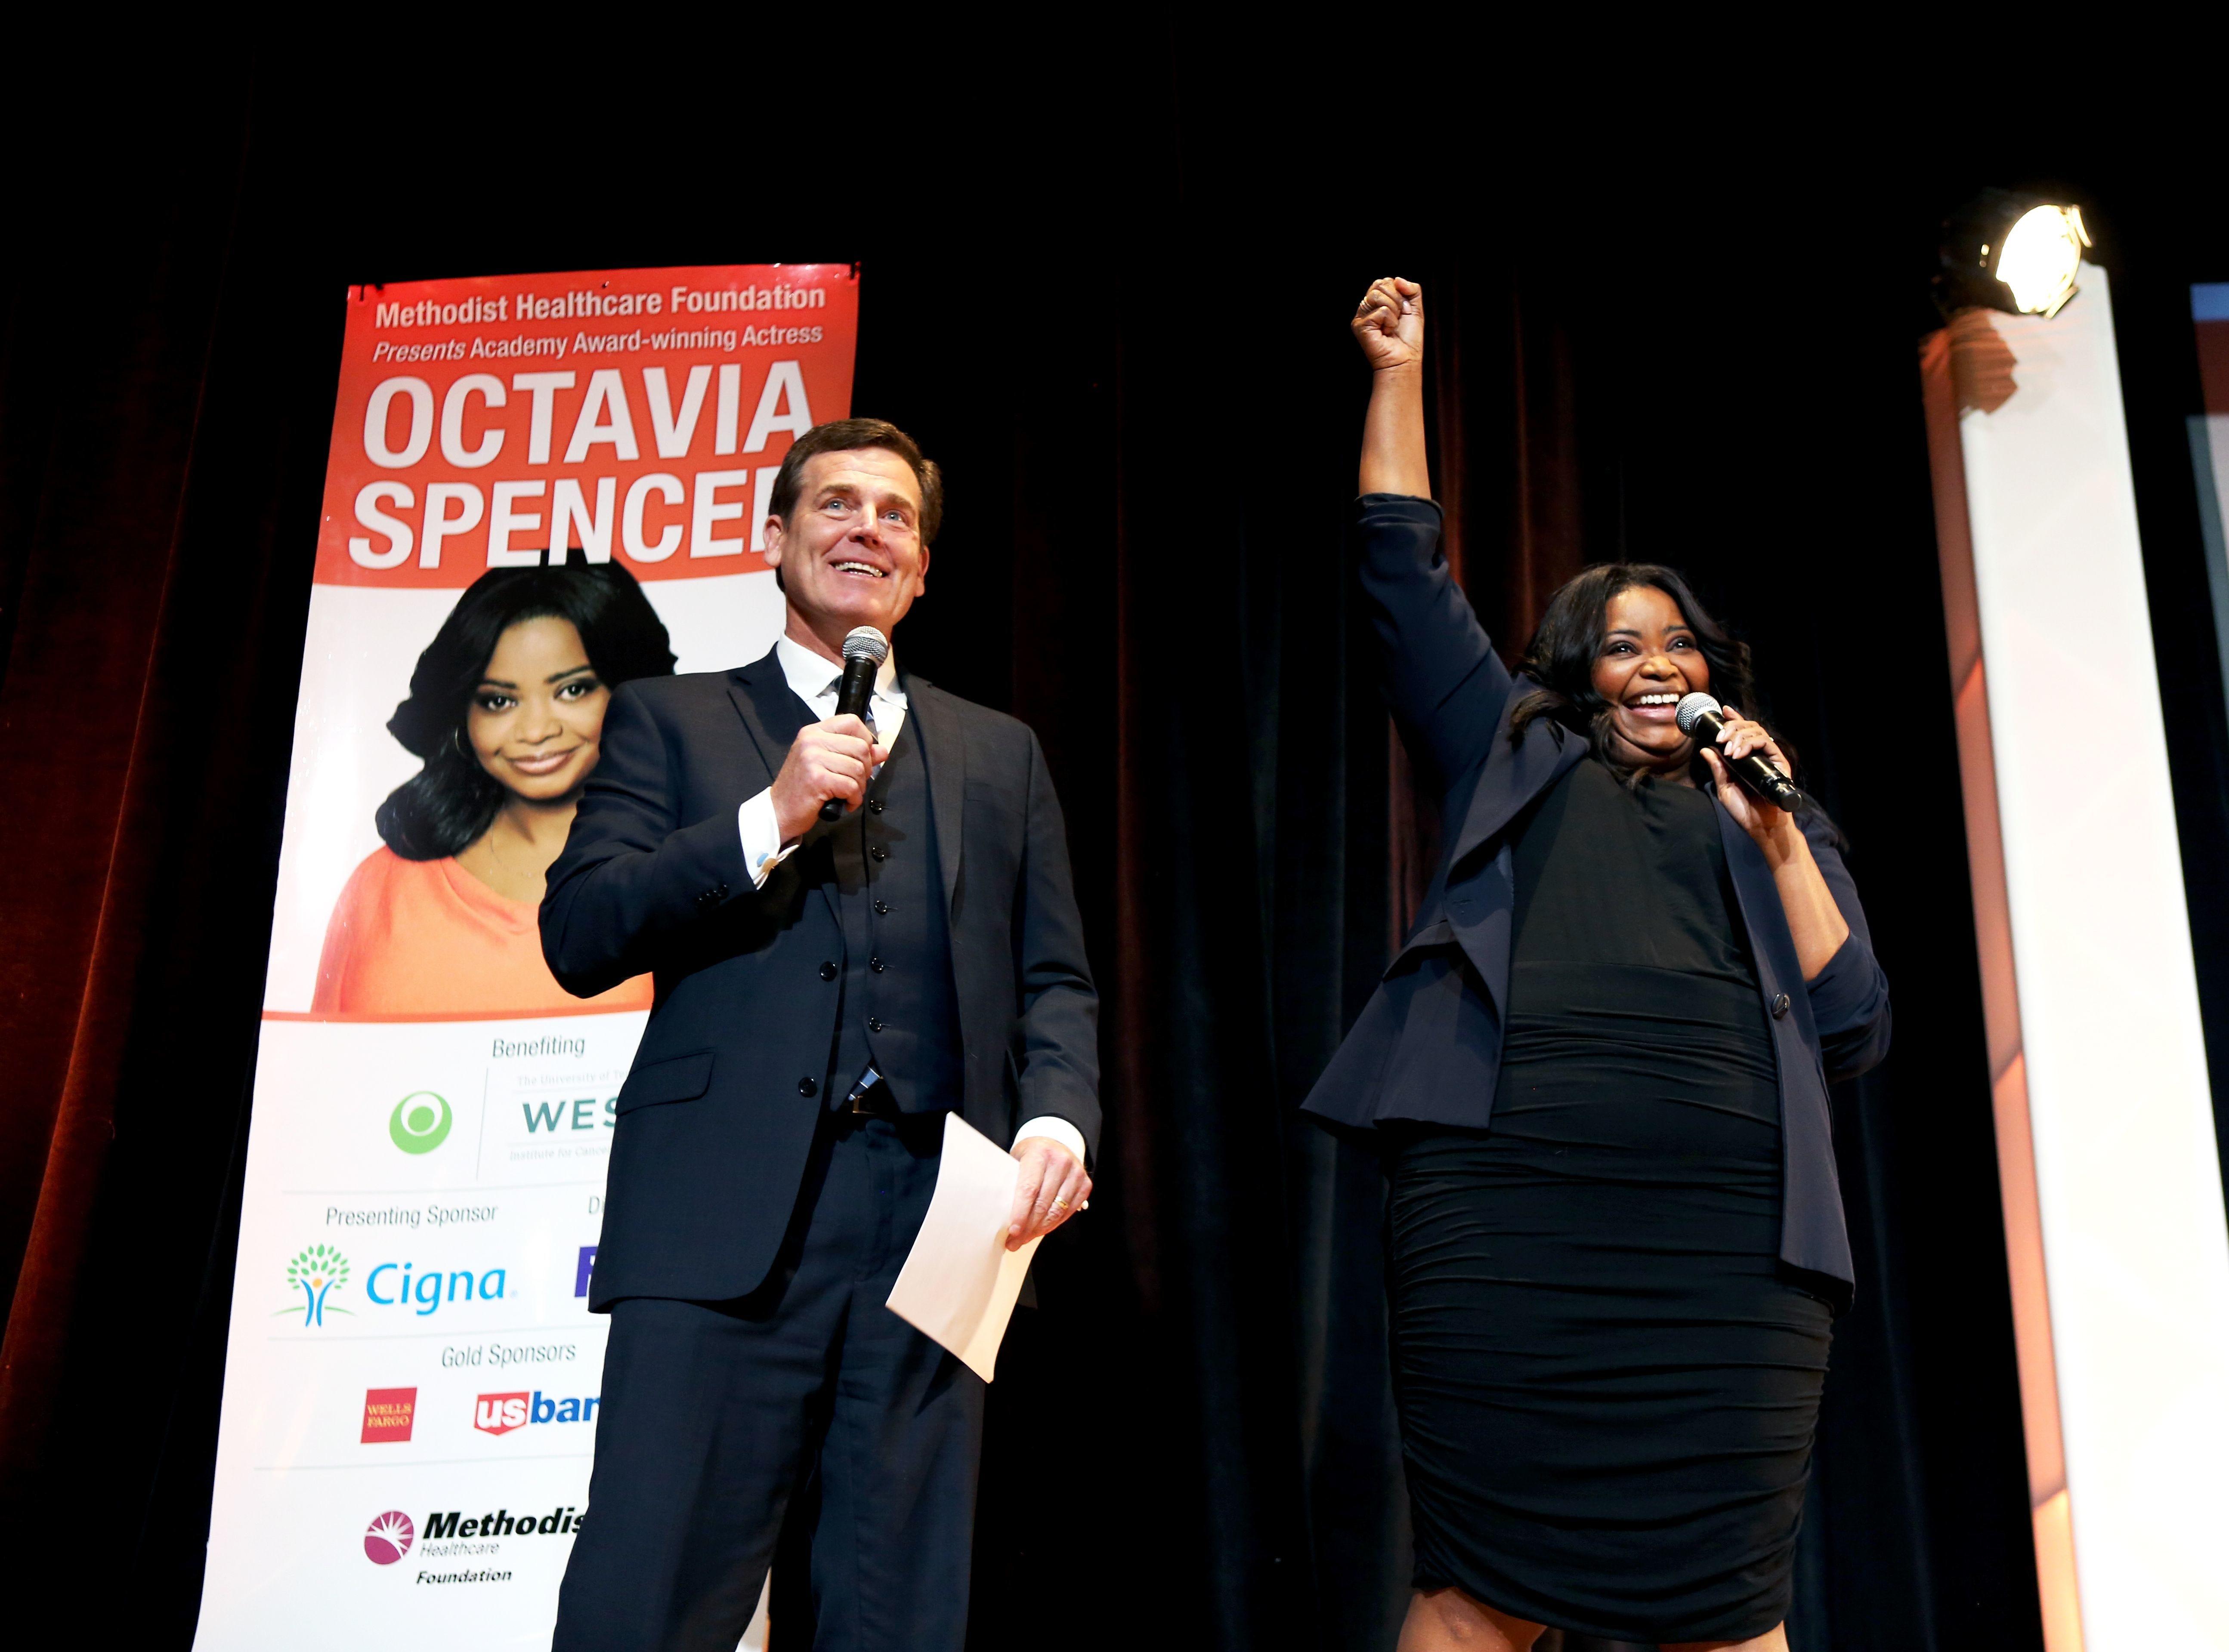 """Academy Award-winning actress Octavia Spencer raises her fist Nov. 28, 2017, and says """"War Eagle"""" after WMC Action News 5 co-anchor Joe Birch, left, mentions Auburn University's win over the University of Alabama in last weekend's 2017 Iron Bowl between the two football teams. Spencer, who graduated from Auburn in 1994, was the guest speaker during the 16th Annual Methodist Healthcare Foundation Cancer Center Luncheon in the Grand Ballroom of The Peabody Hotel."""